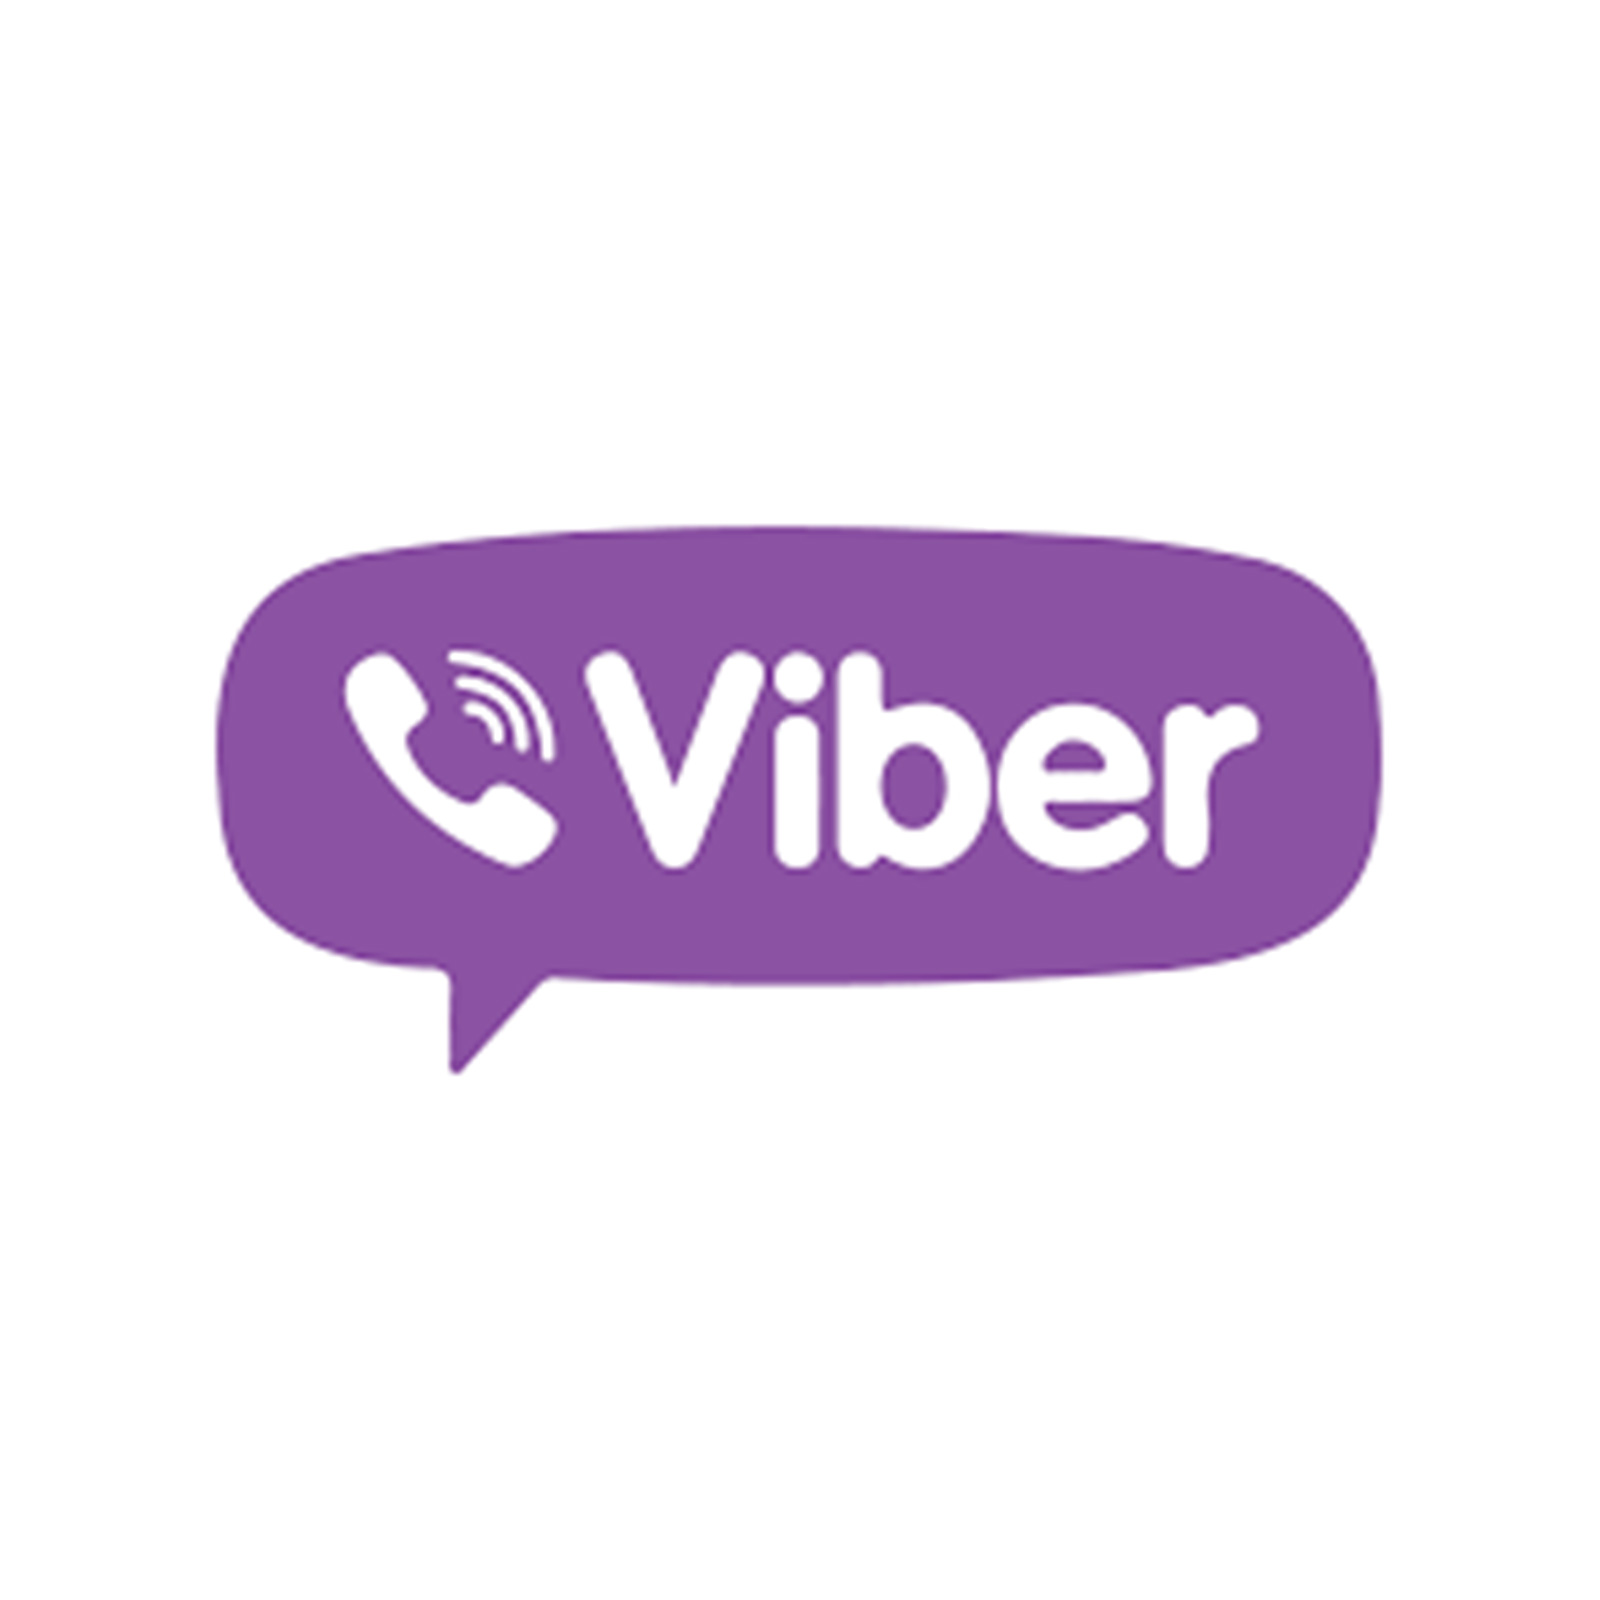 This multi-lingual social platform, which is available in more than 30 languages, is known for its instant text messaging and voice messaging capabilities. You can also share photos and videos and audio messages, using Viber. It offers you the ability to call non-Viber users through a feature named Viber Out.